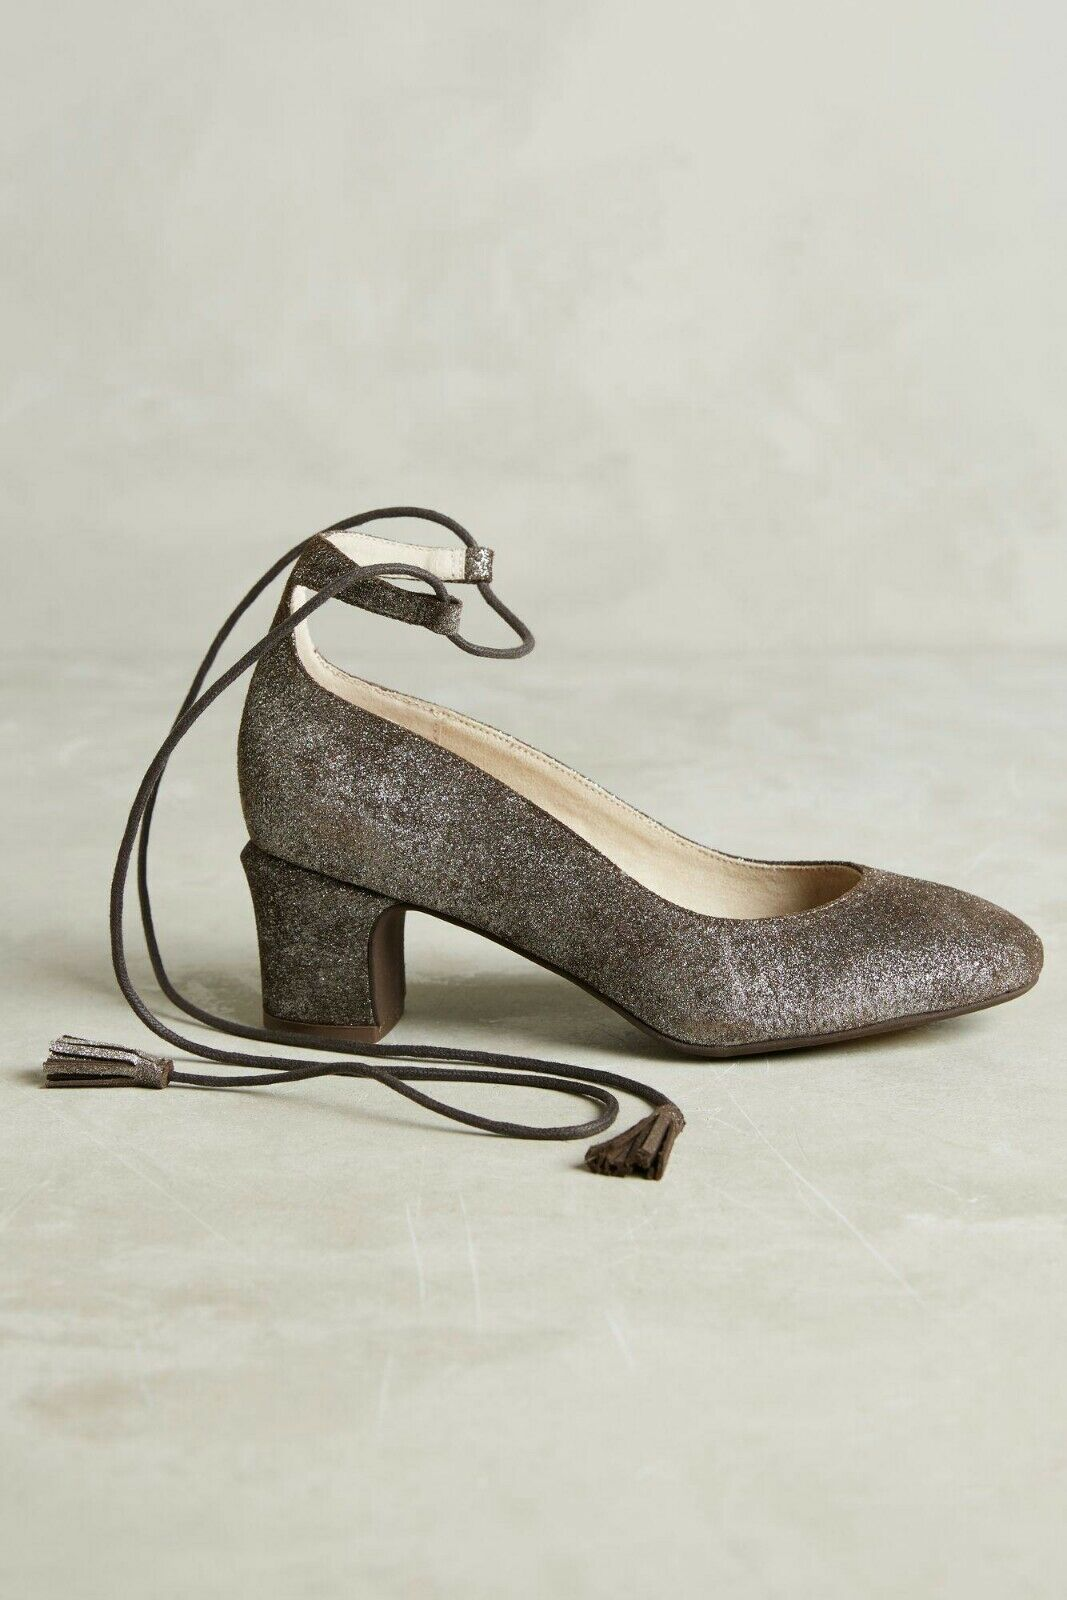 Anthropologie Pachuca Pumps Lace Up Tassel Pewter Suede by Lien Do Size 7.5  148